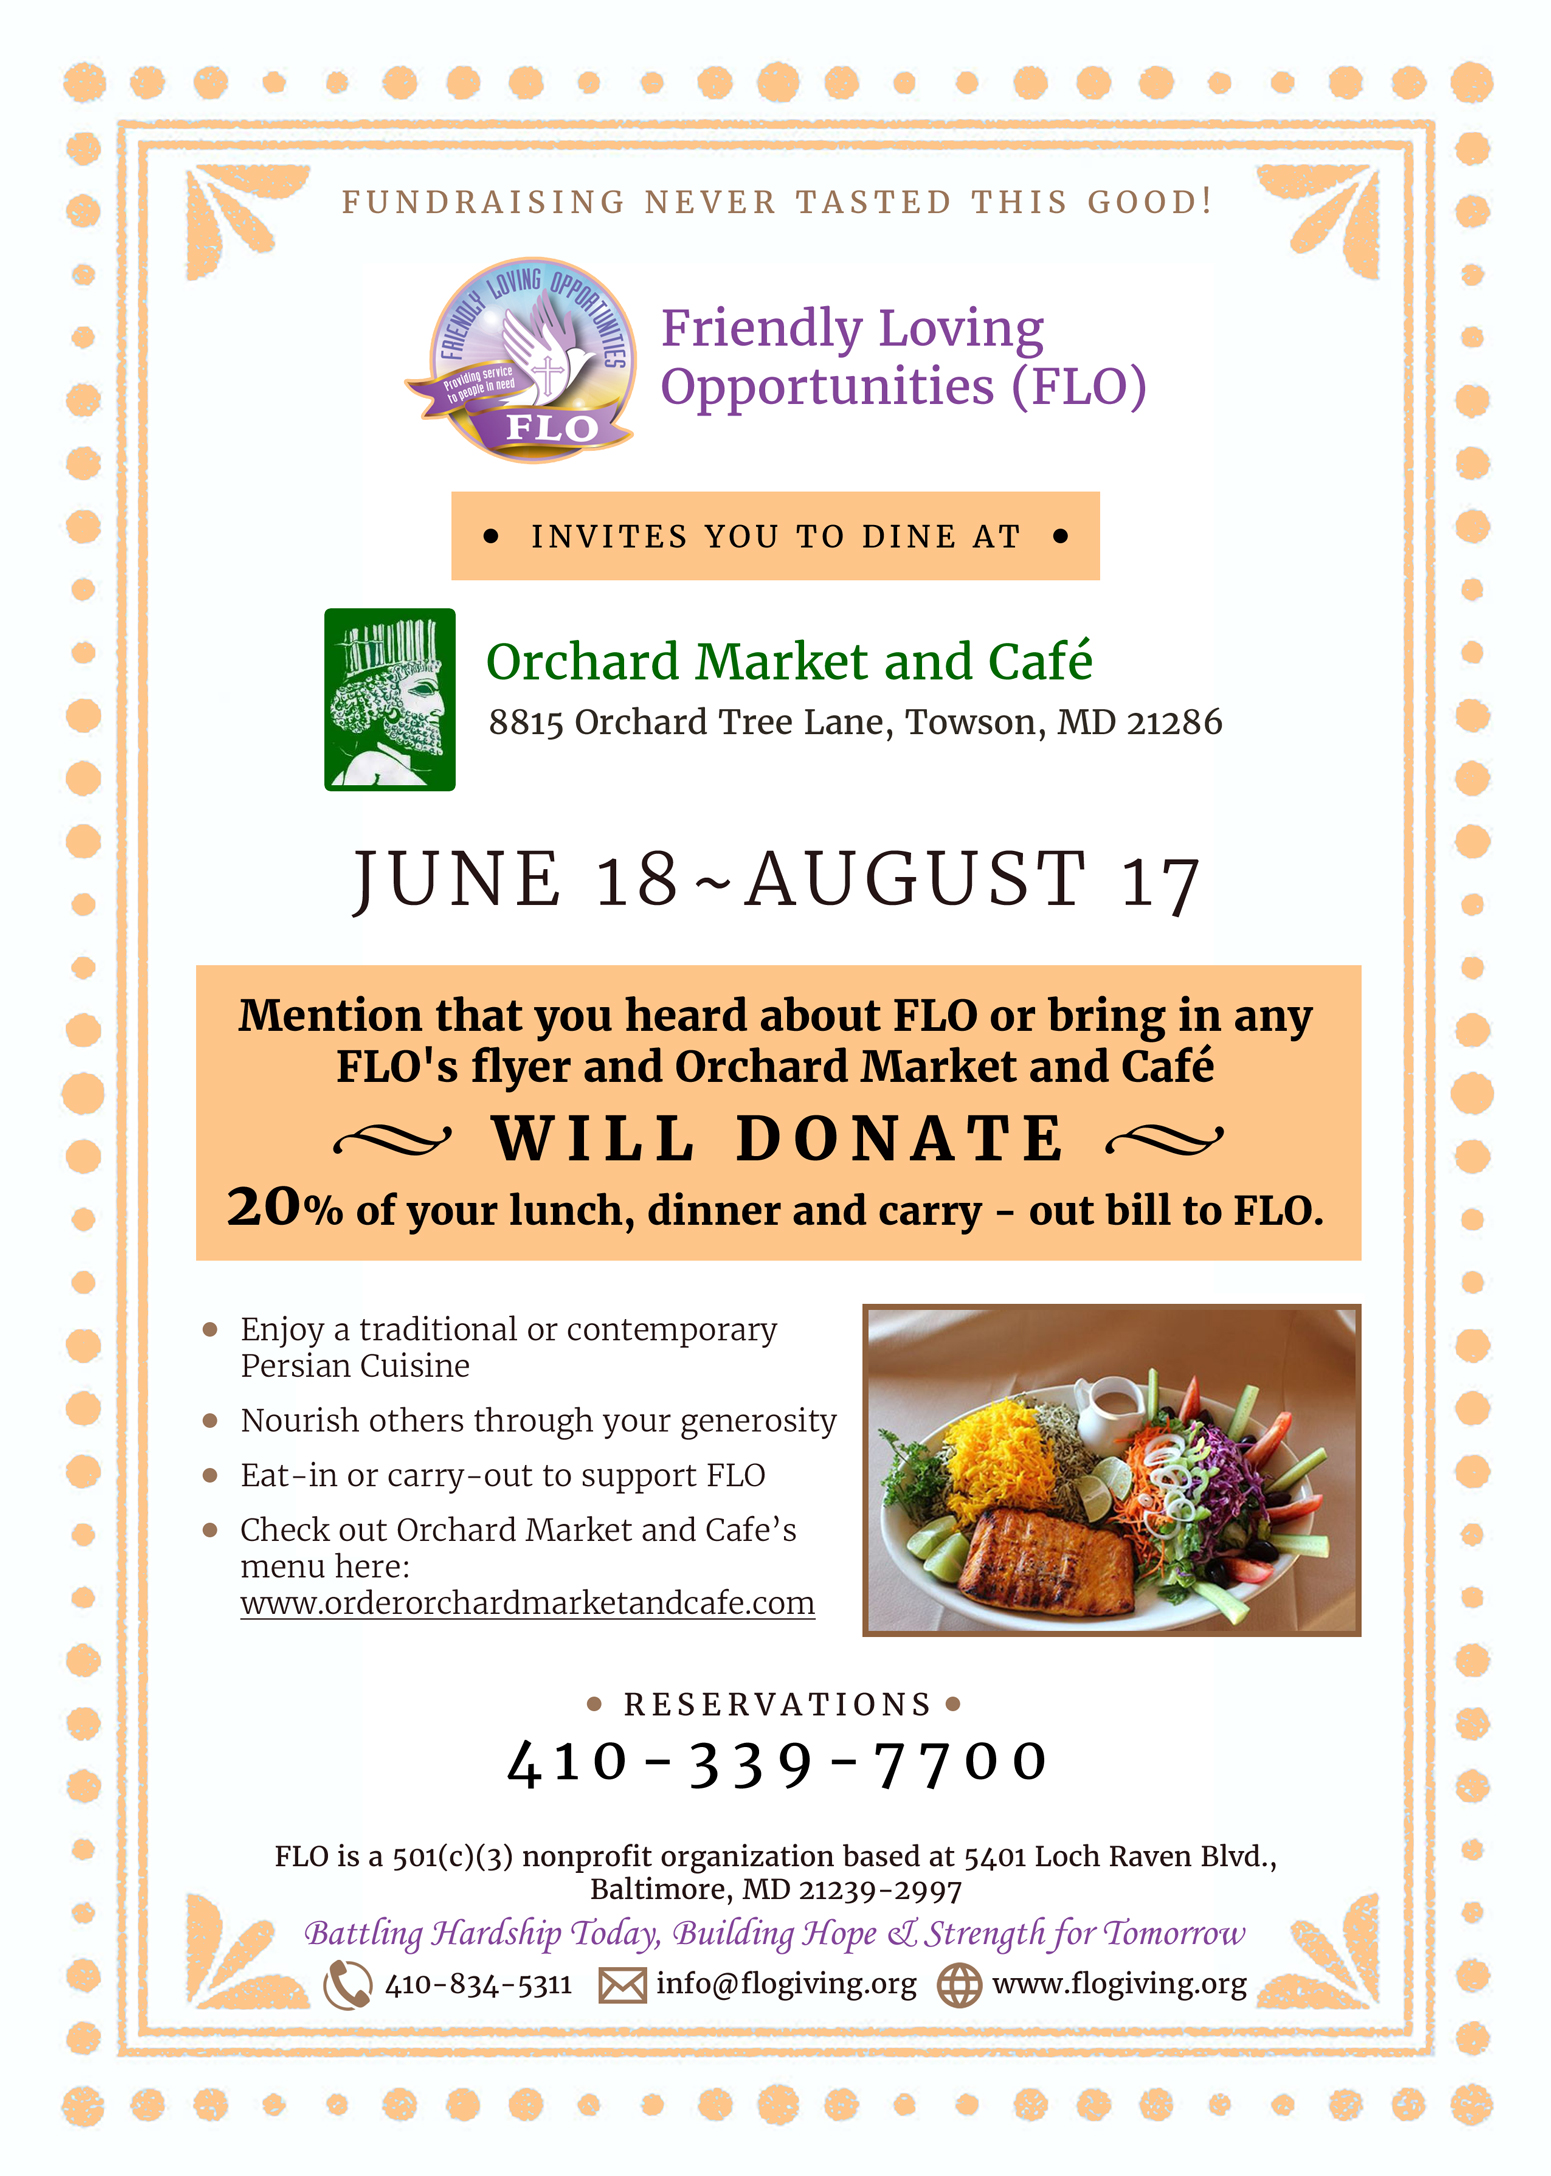 Fundraiser: Dining out for a purpose